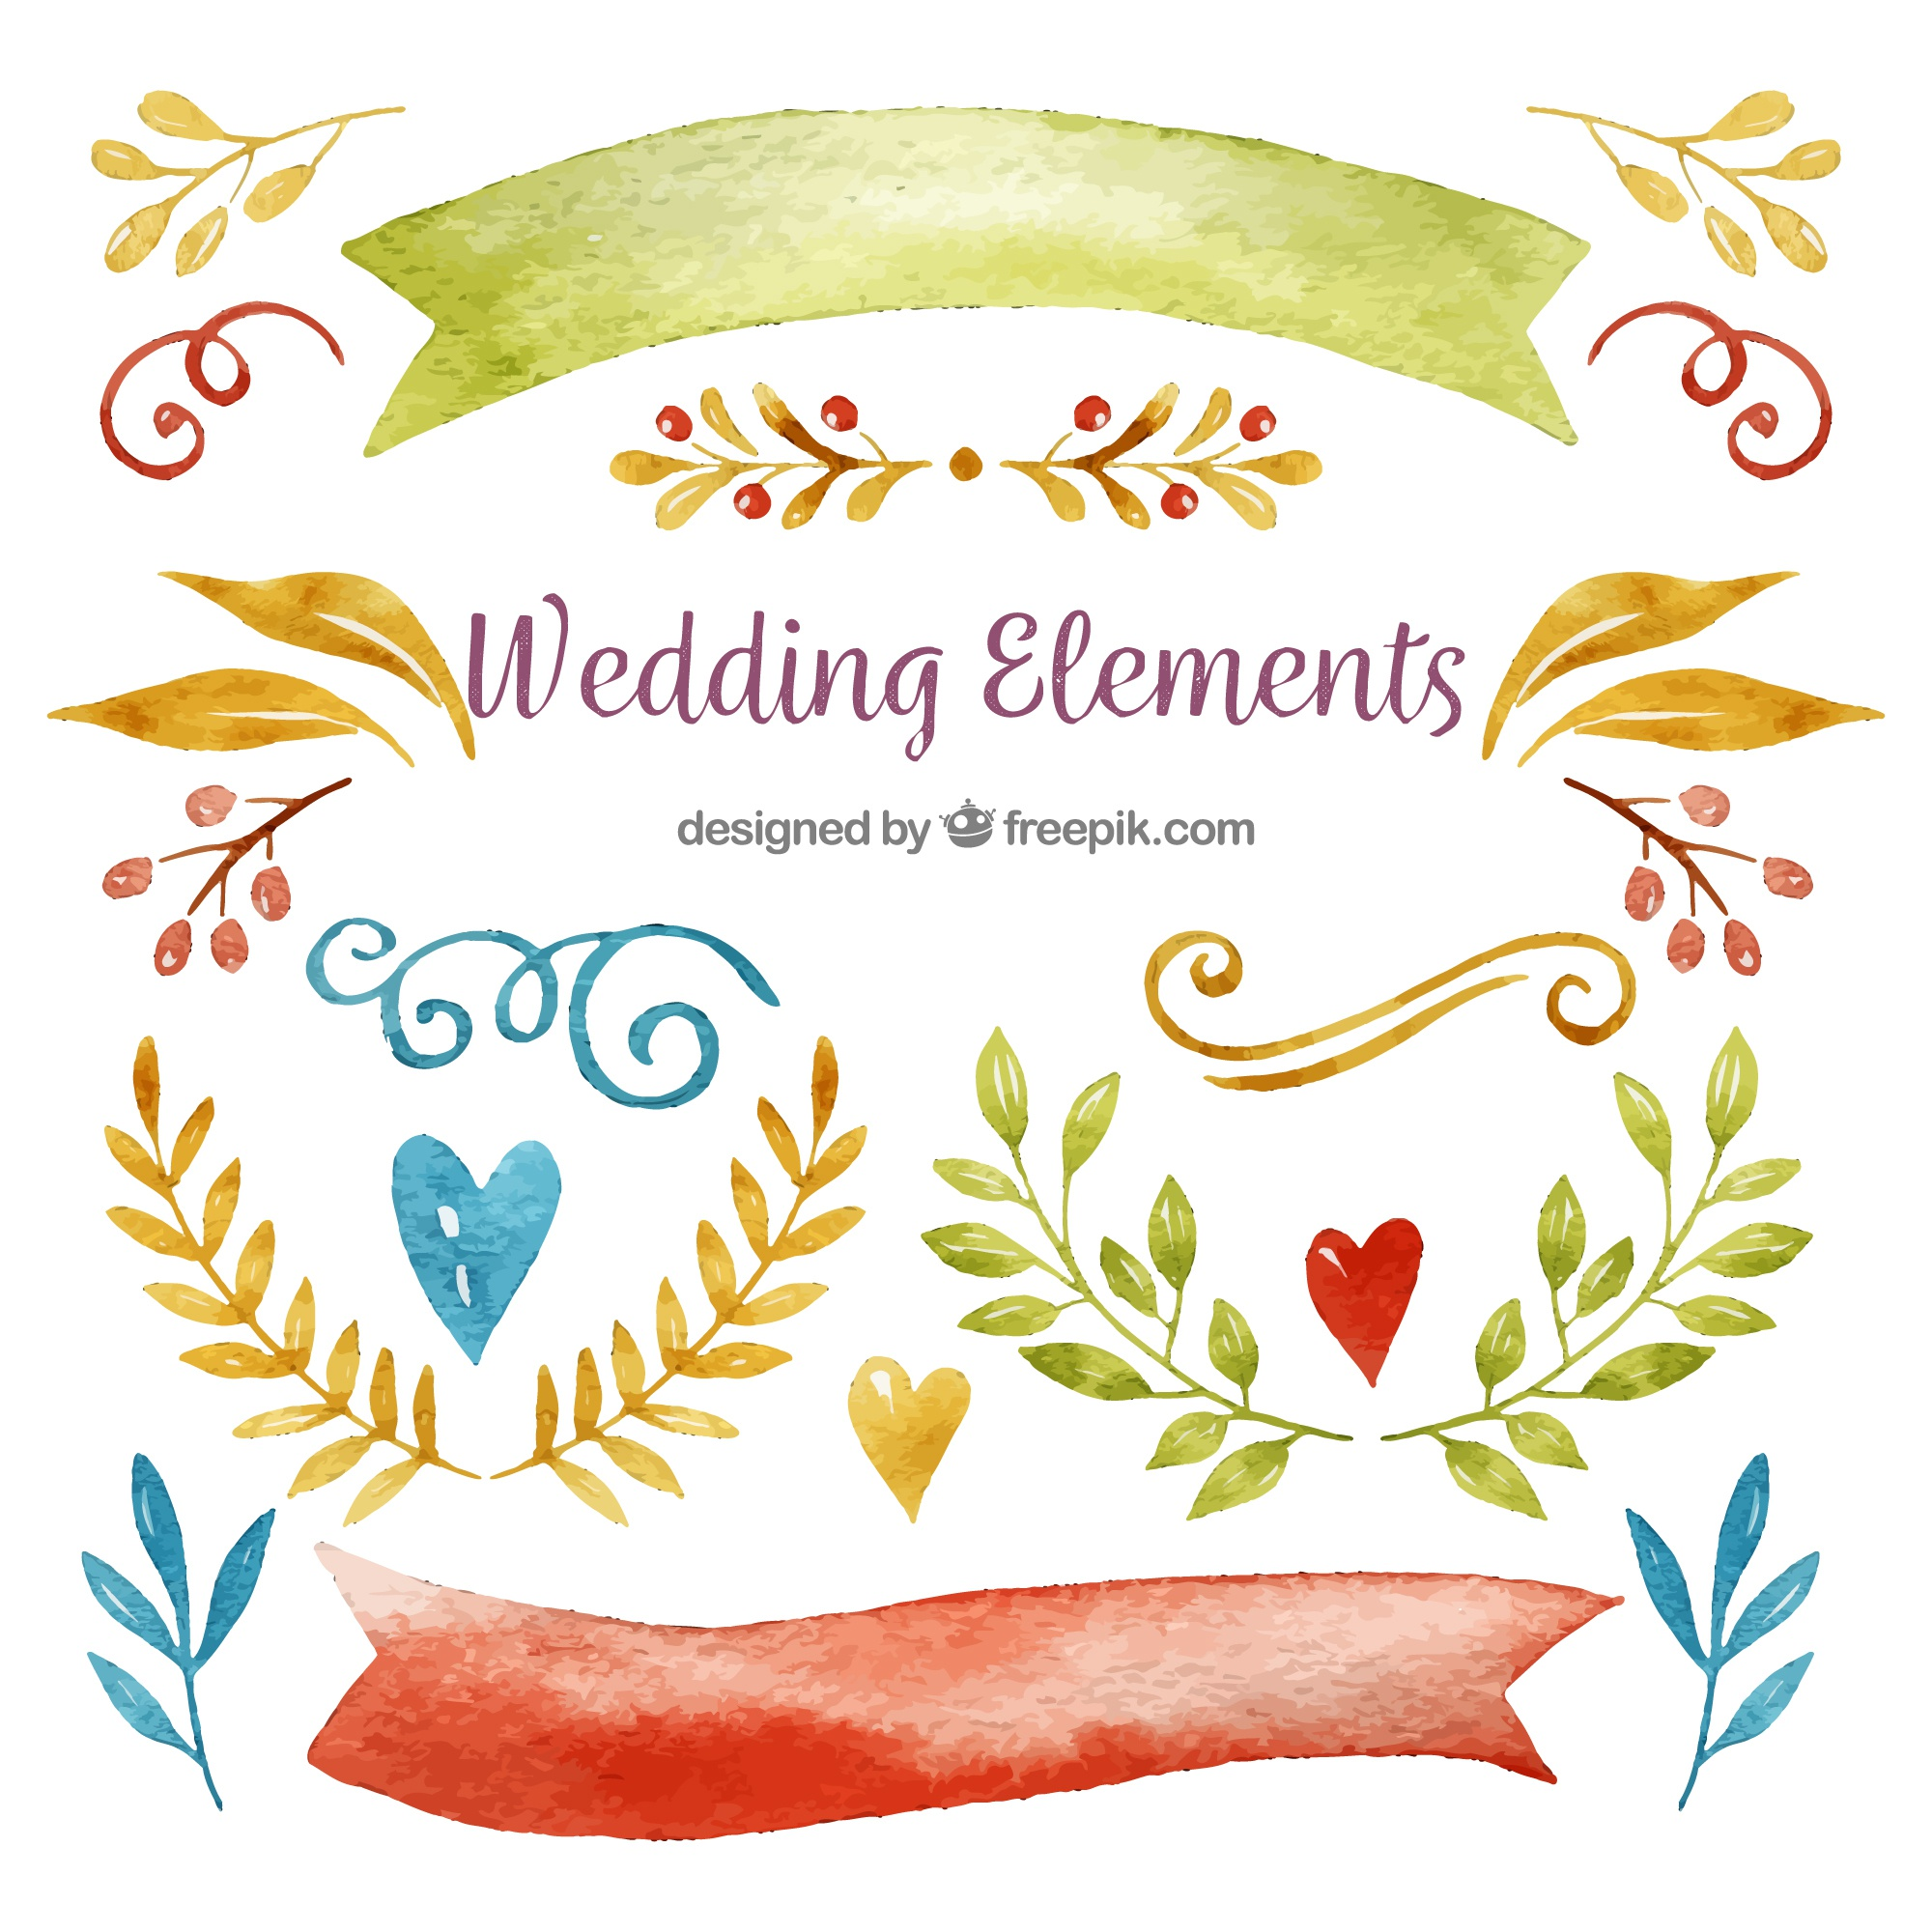 Watercolor floral wedding ornament collection